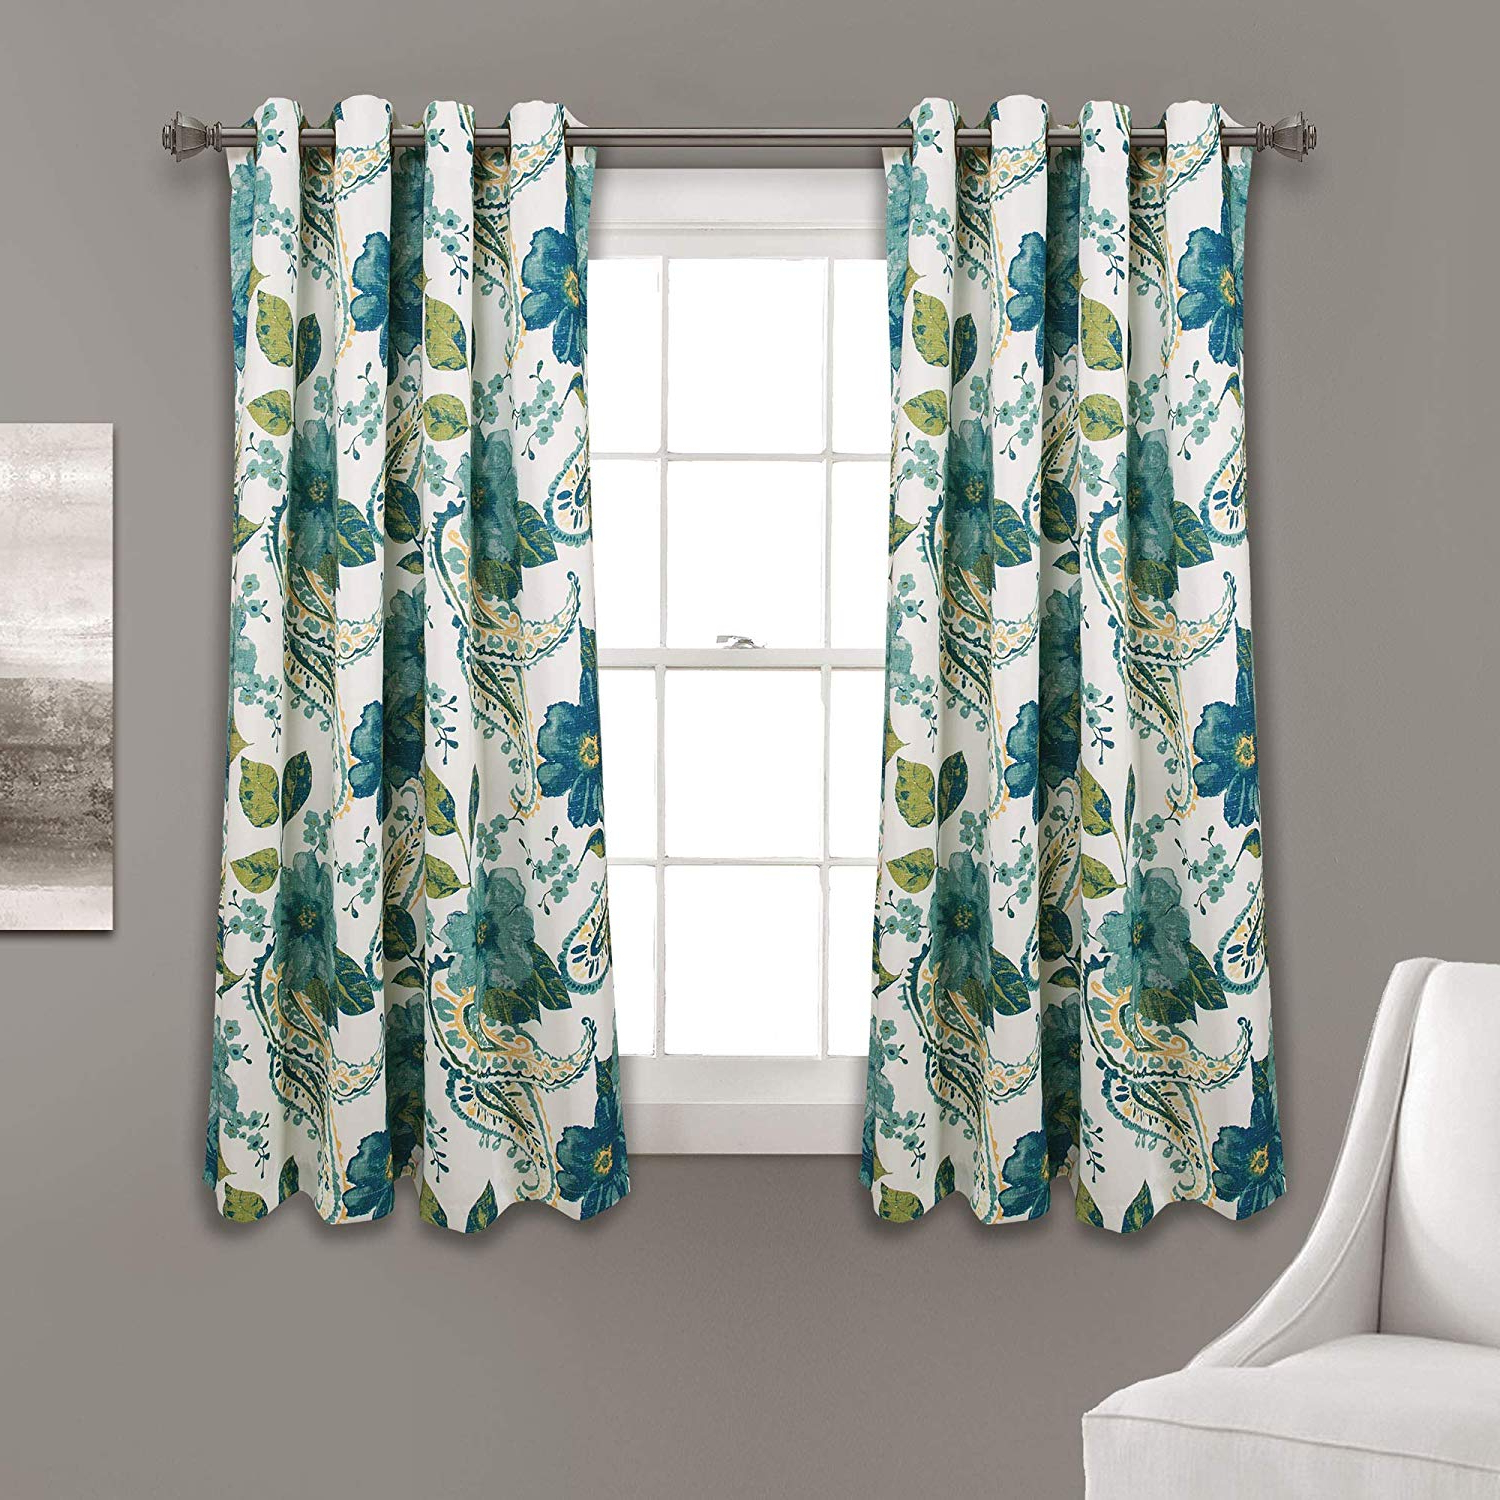 Half Moon Floral Paisley Room Darkening Window Curtain Panels Blue 52x63 Set With Regard To Most Recent Weeping Flowers Room Darkening Curtain Panel Pairs (View 17 of 20)